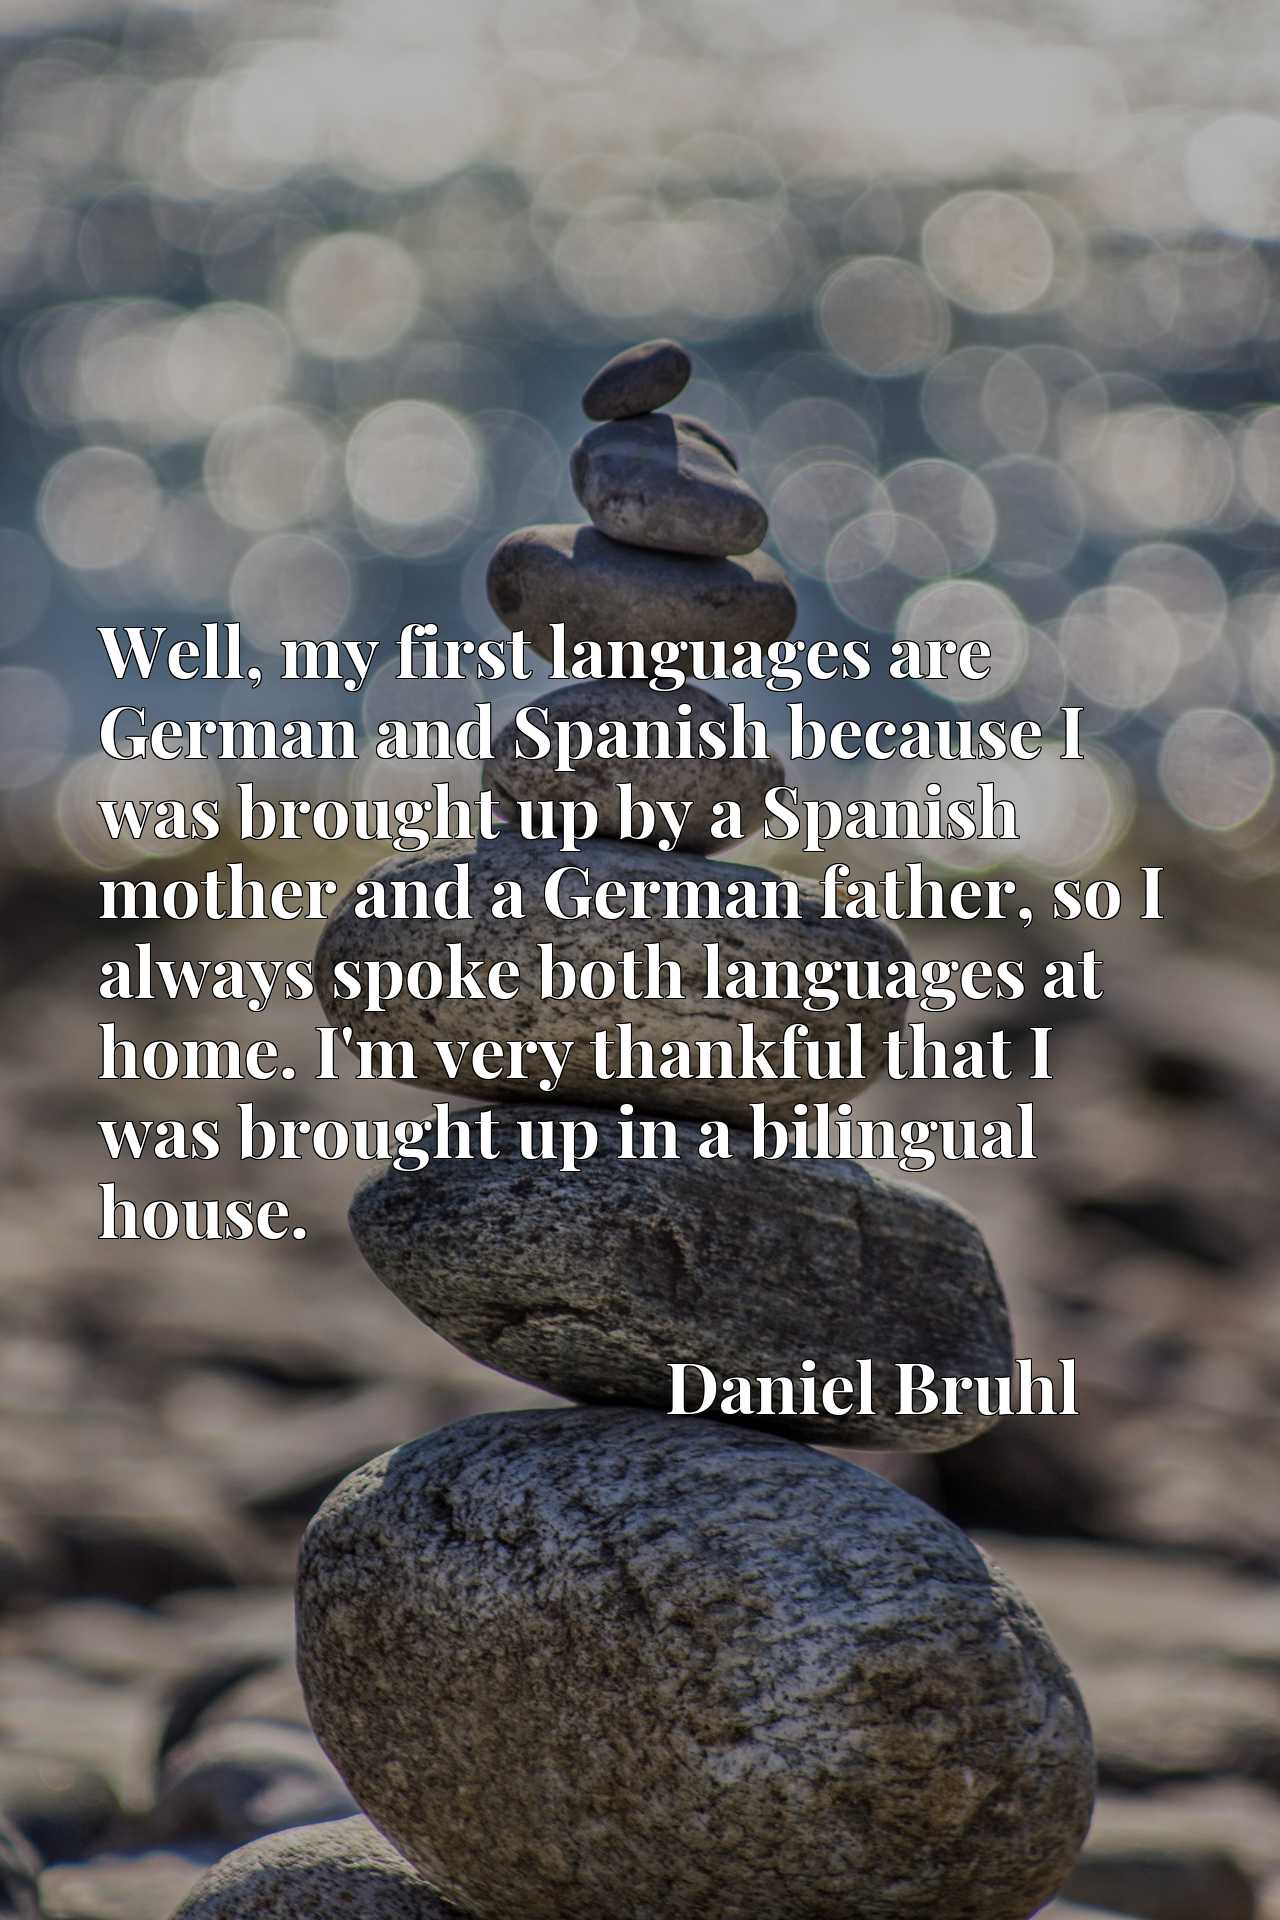 Well, my first languages are German and Spanish because I was brought up by a Spanish mother and a German father, so I always spoke both languages at home. I'm very thankful that I was brought up in a bilingual house.